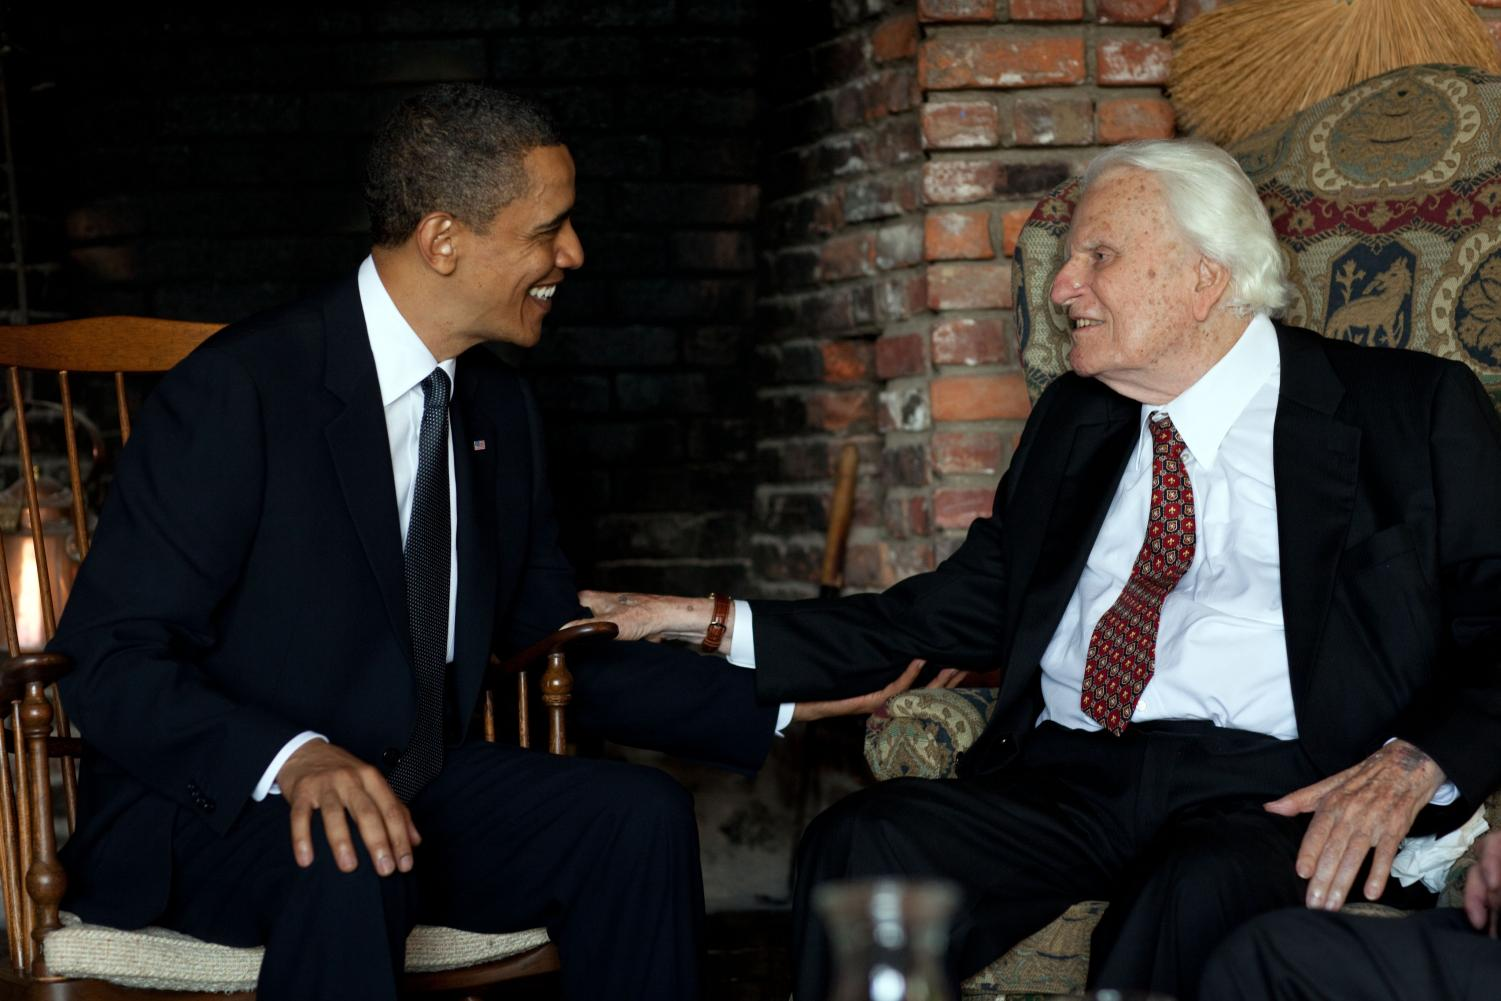 Billy Graham with former President Barack Obama in 2010. Photo via Wikimedia Commons under Creative Commons license.